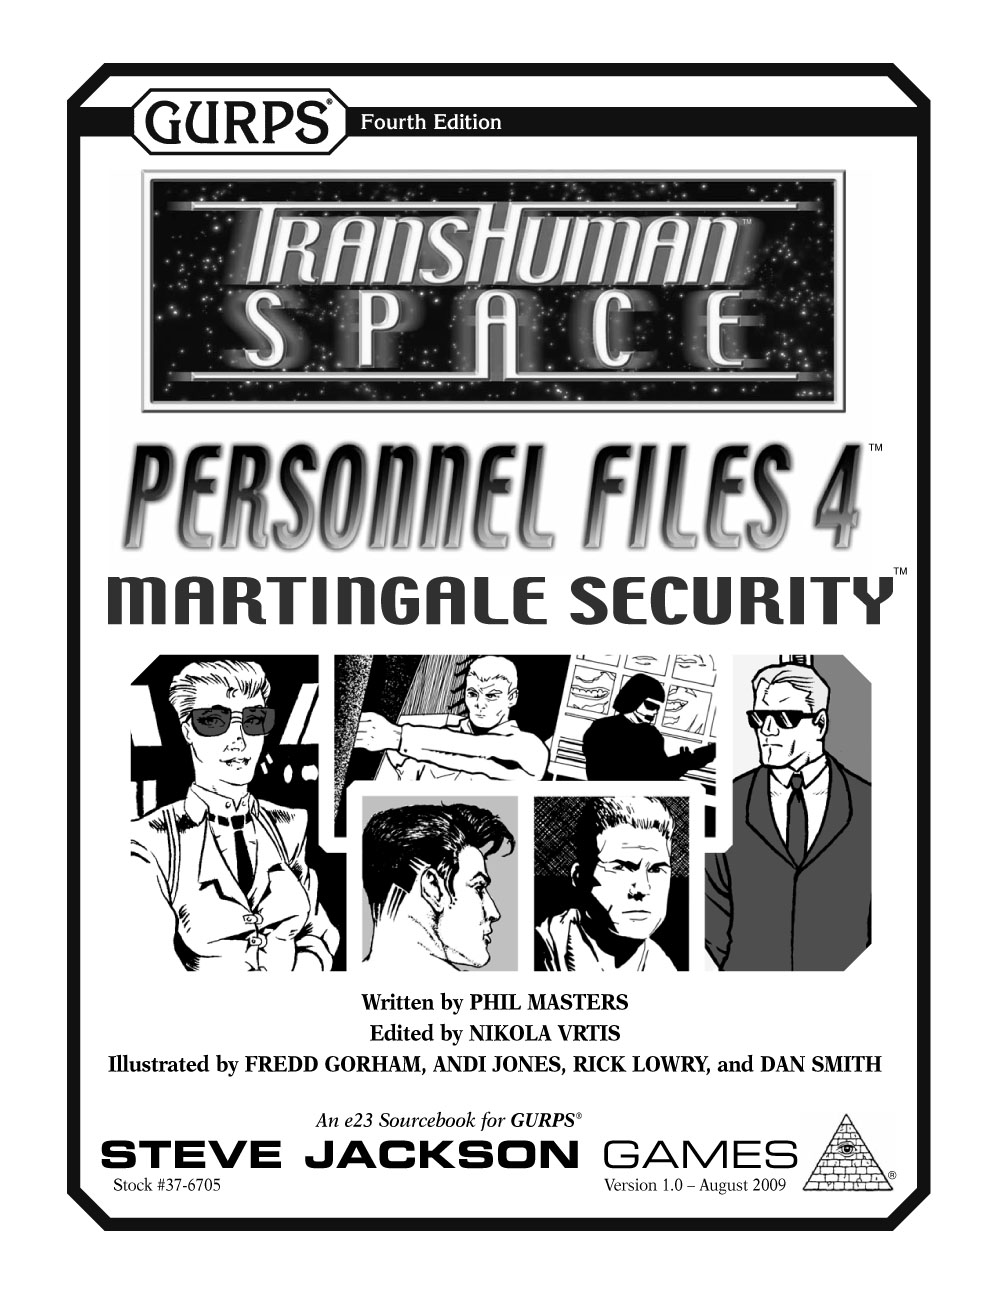 GURPS Transhuman Space: Personnel Files 4 – Martingale Security